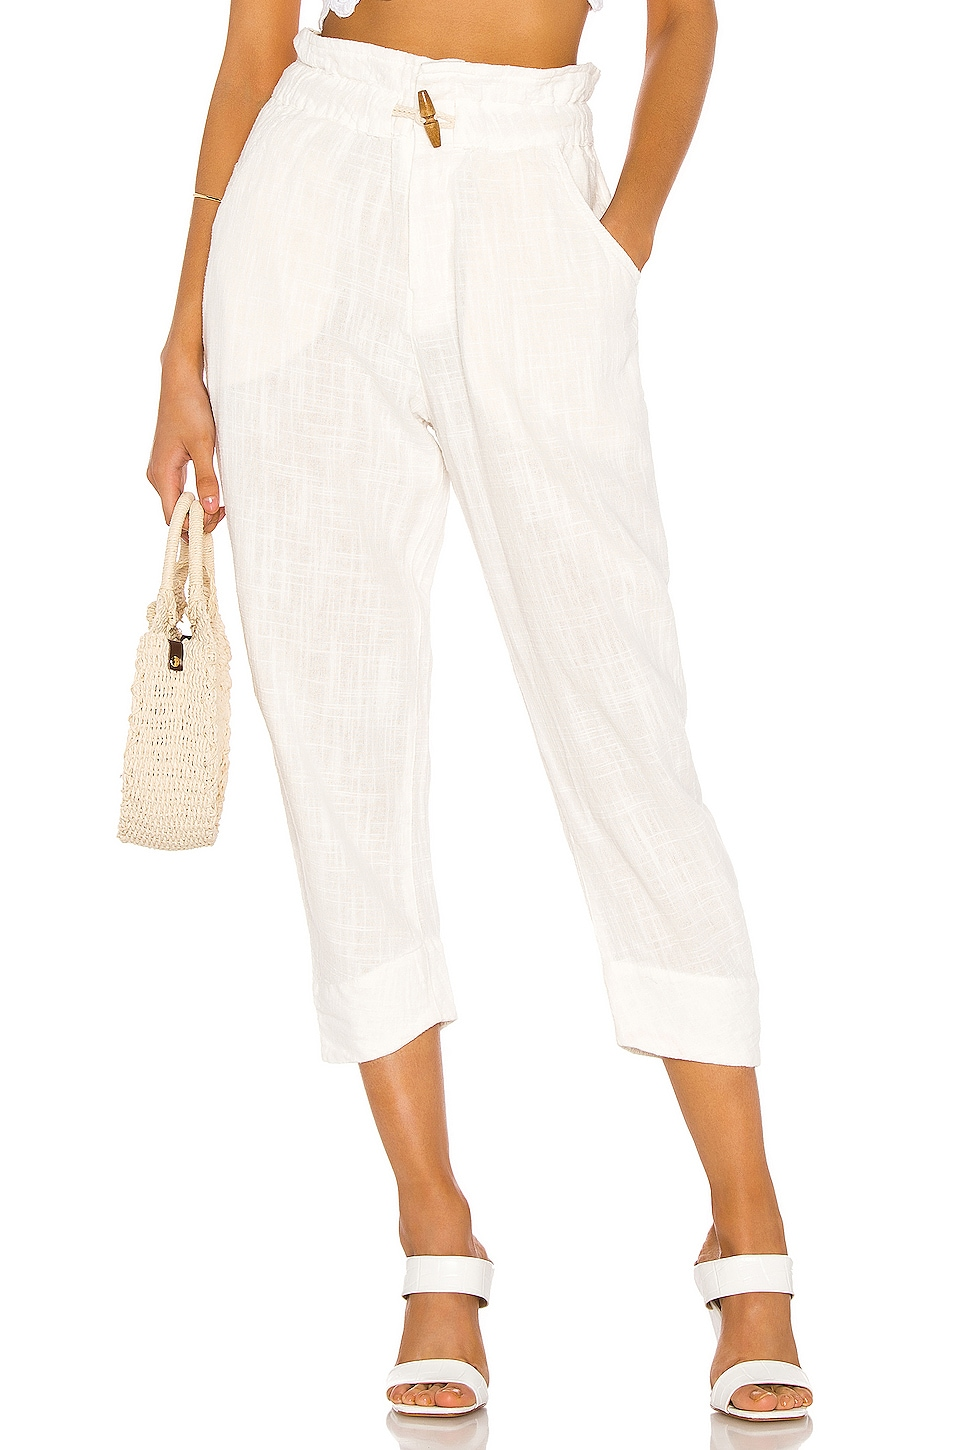 Free People Paradise Pant in Cream